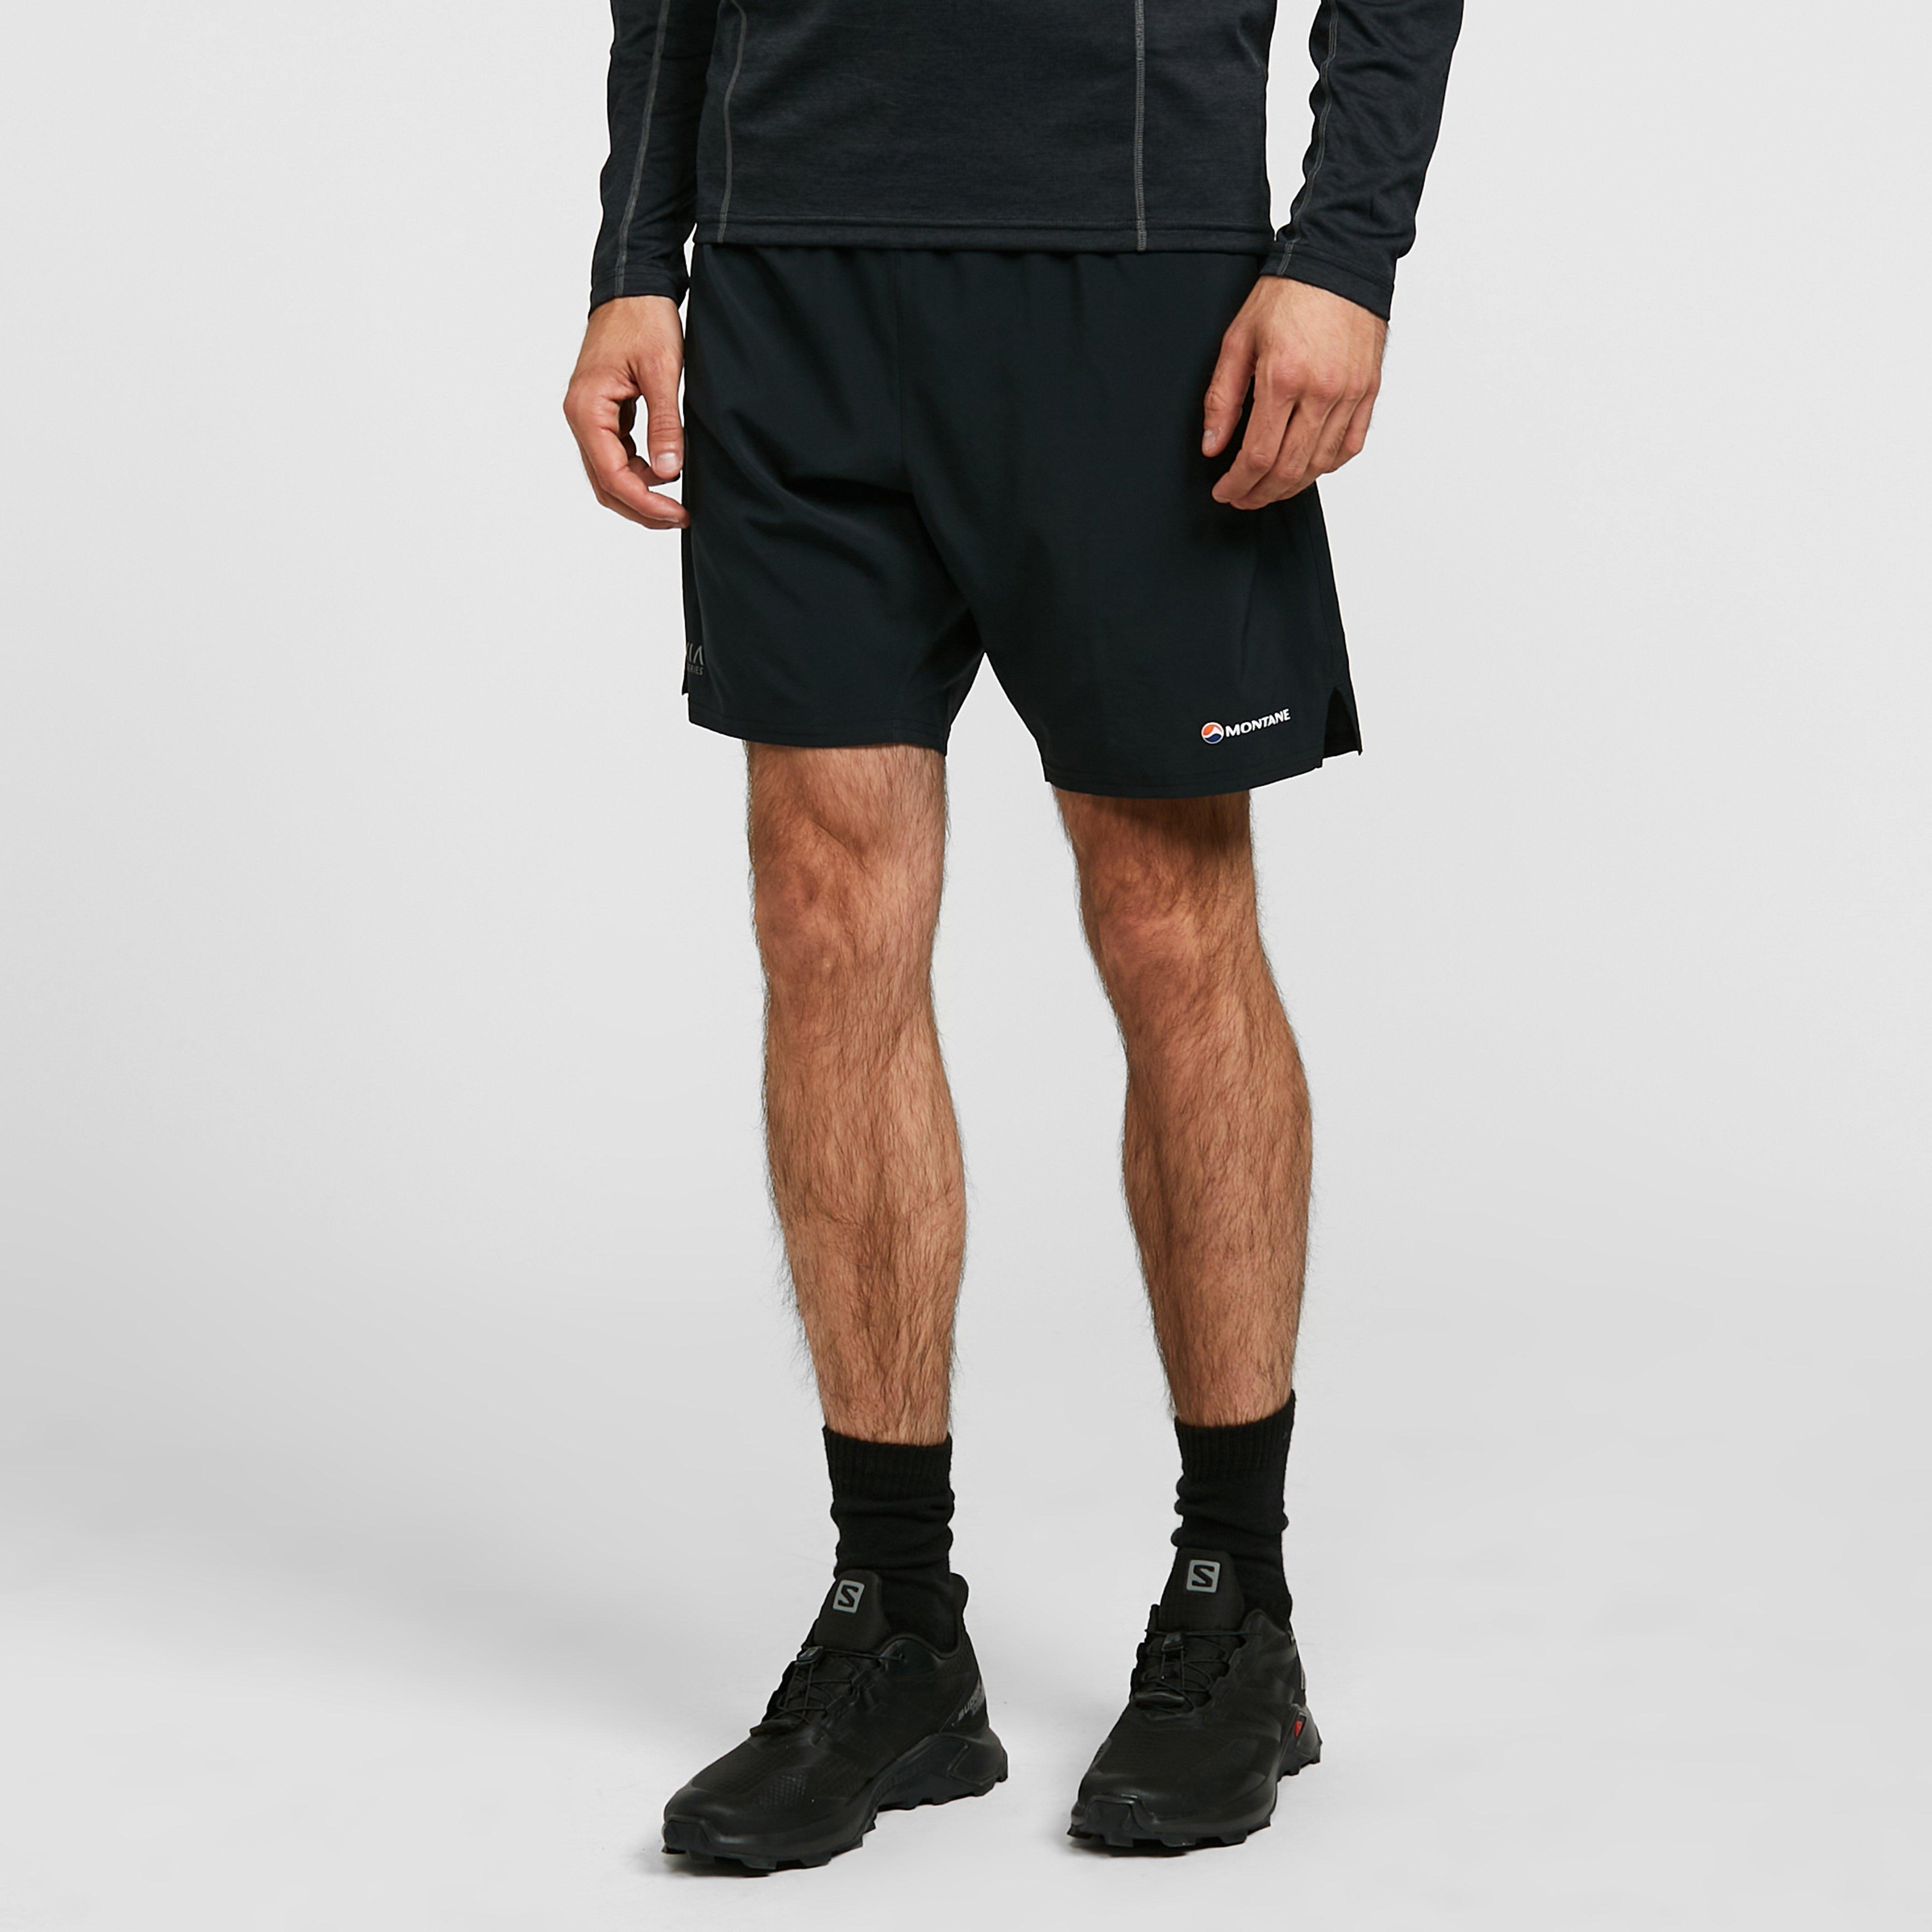 Montane Men's Razor Shorts, BLACK/SHORTS